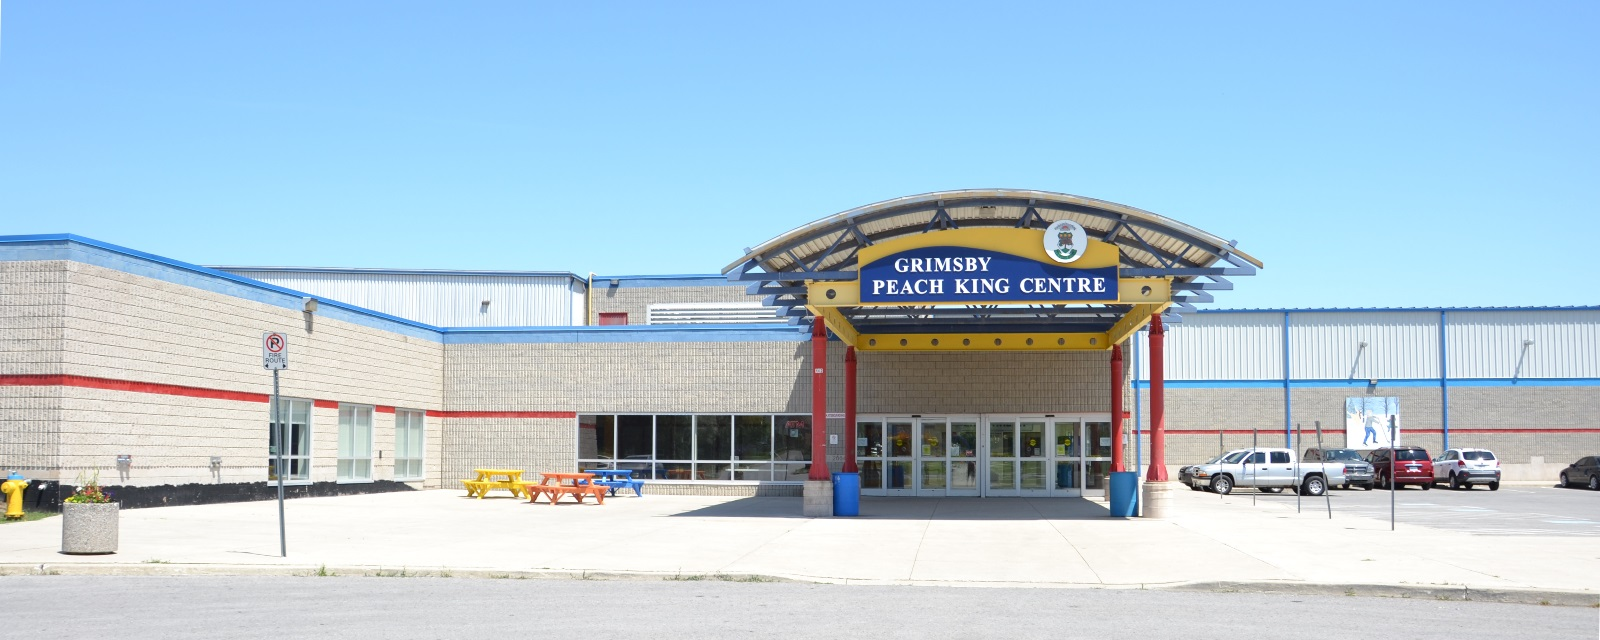 Front of the Grimsby Peach King Centre